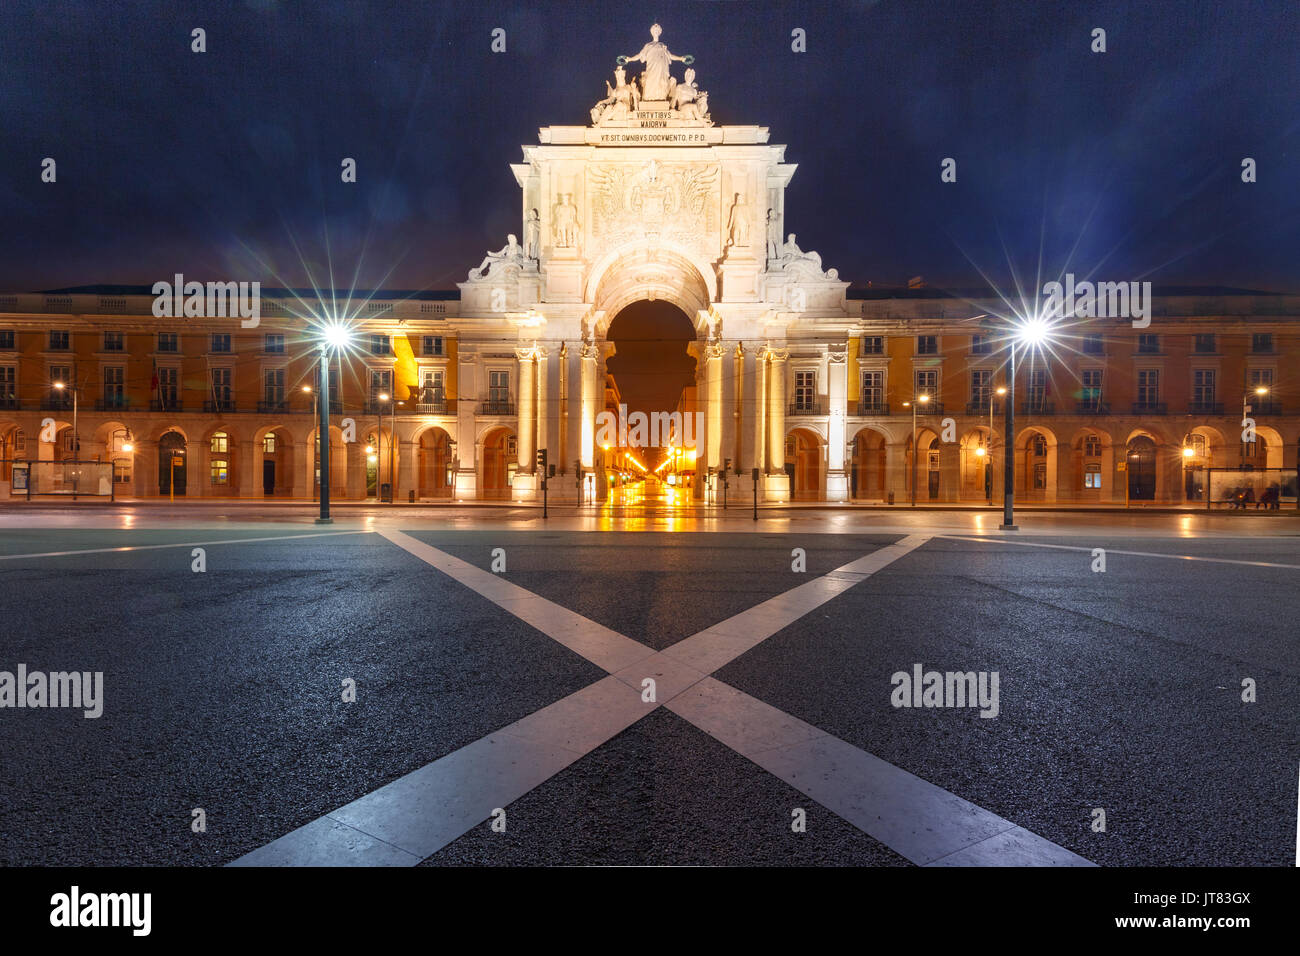 Commerce Square at night in Lisbon, Portugal Stock Photo